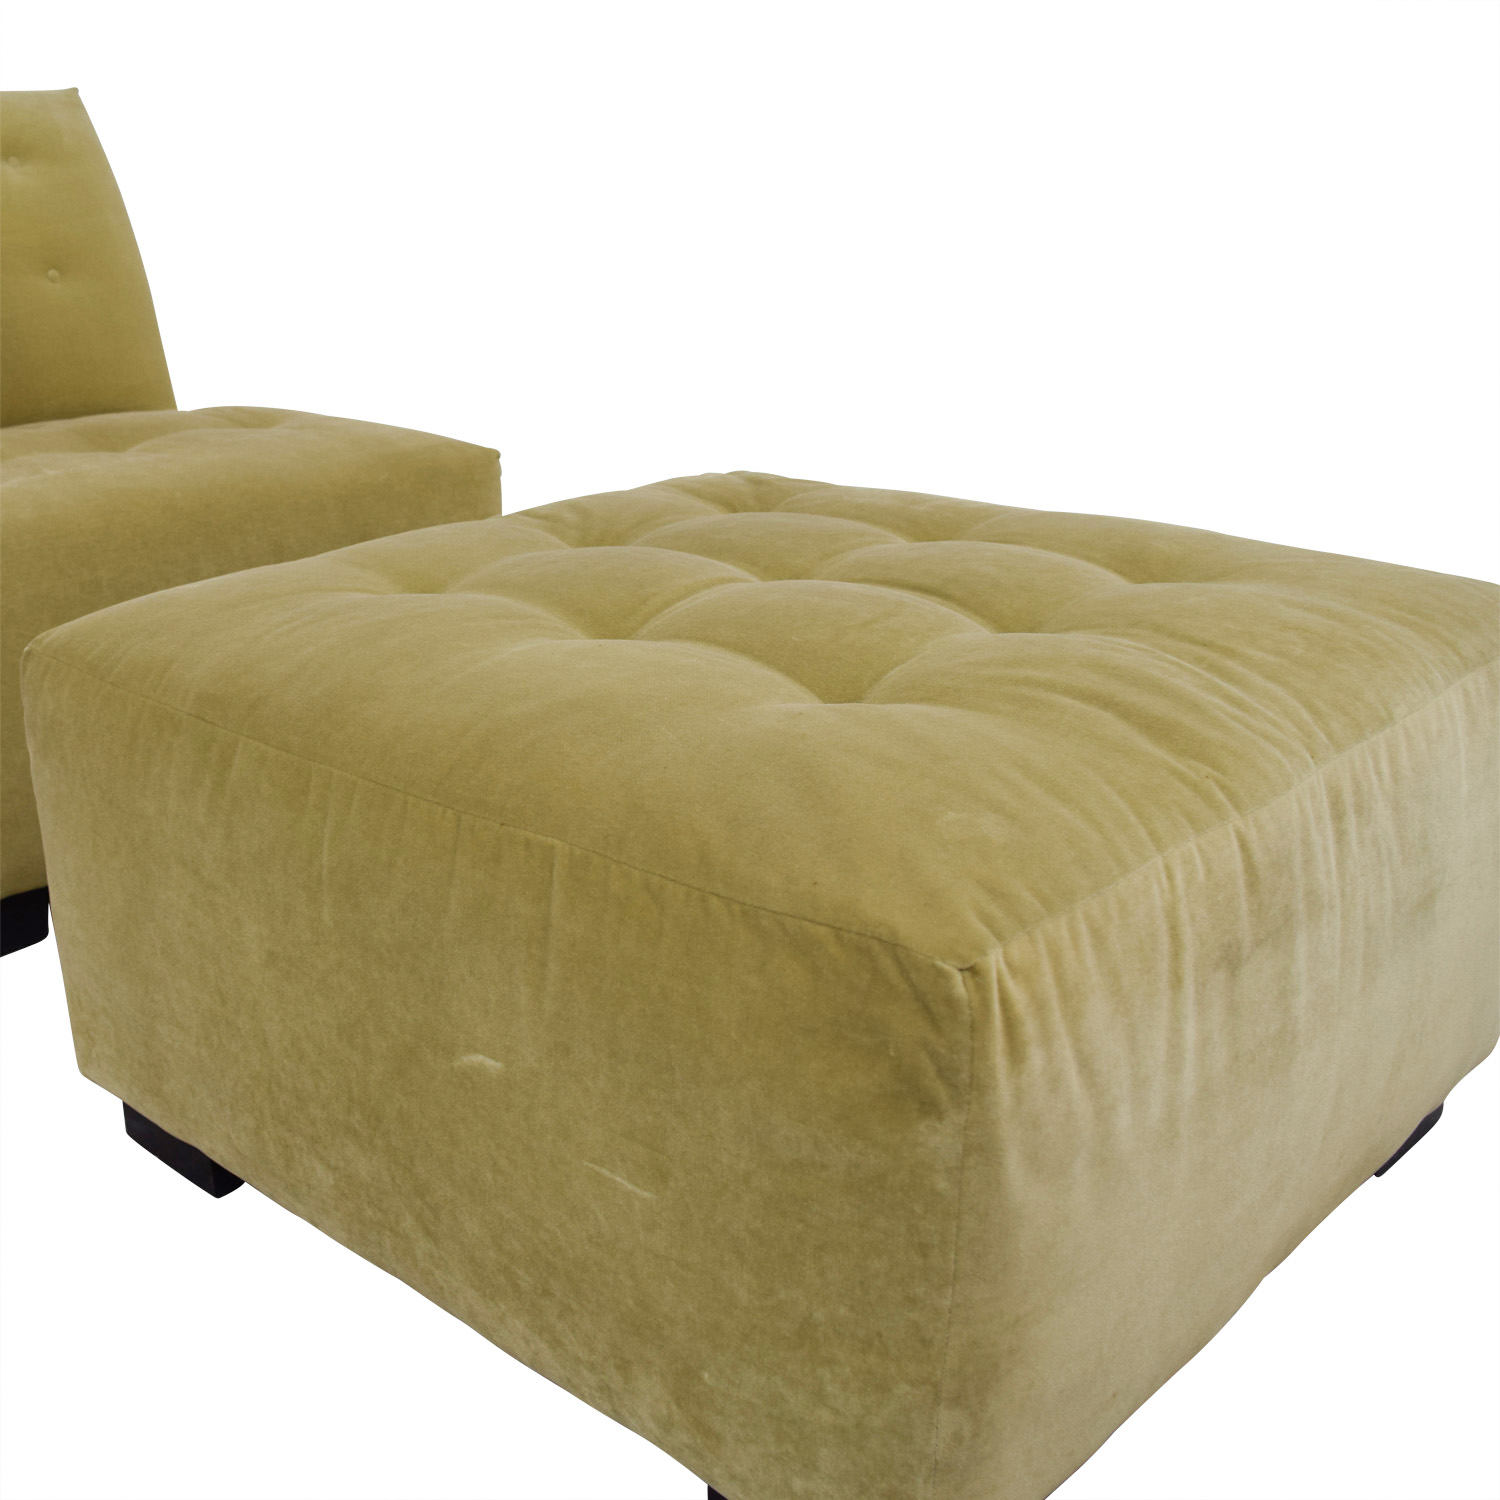 Mitchell Gold + Bob Williams Mitchell Gold + Bob Williams Sage Green Tufted Velvet Lounge Chair & Ottoman for sale